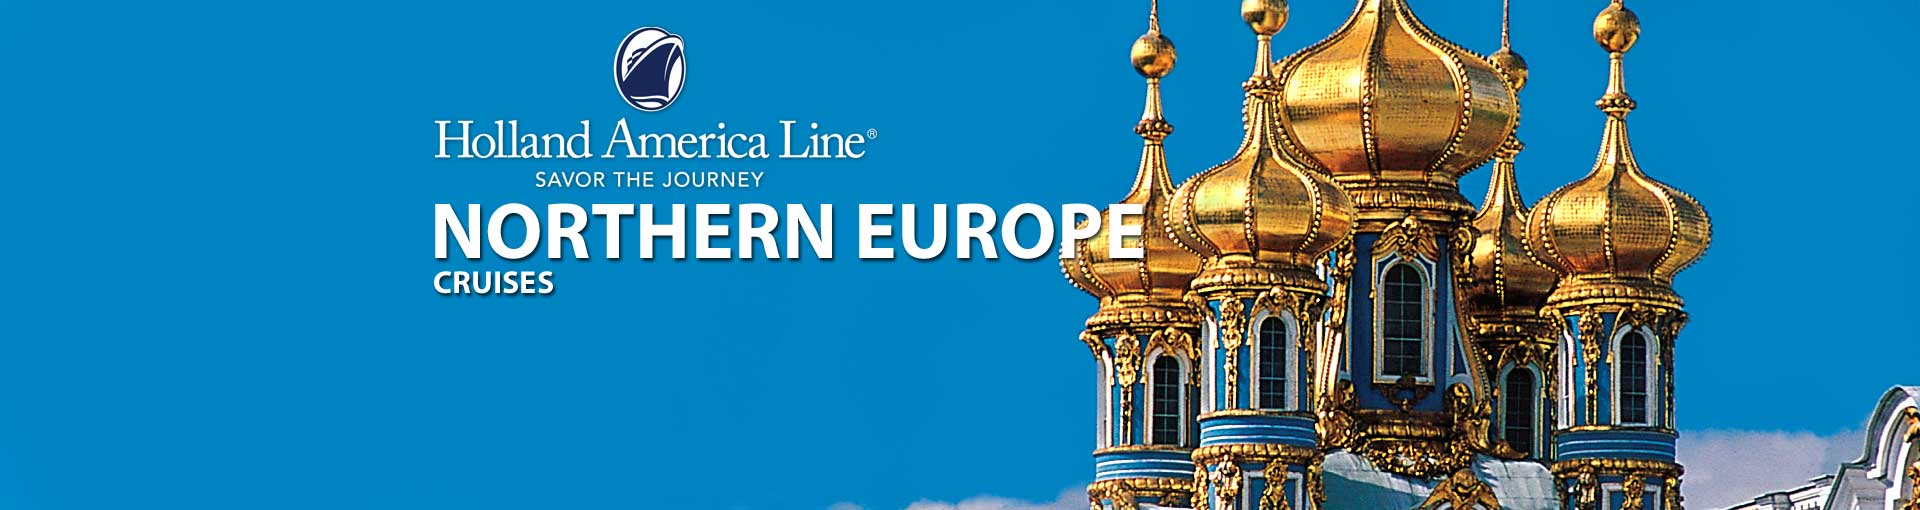 Holland America Northern Europe Cruises